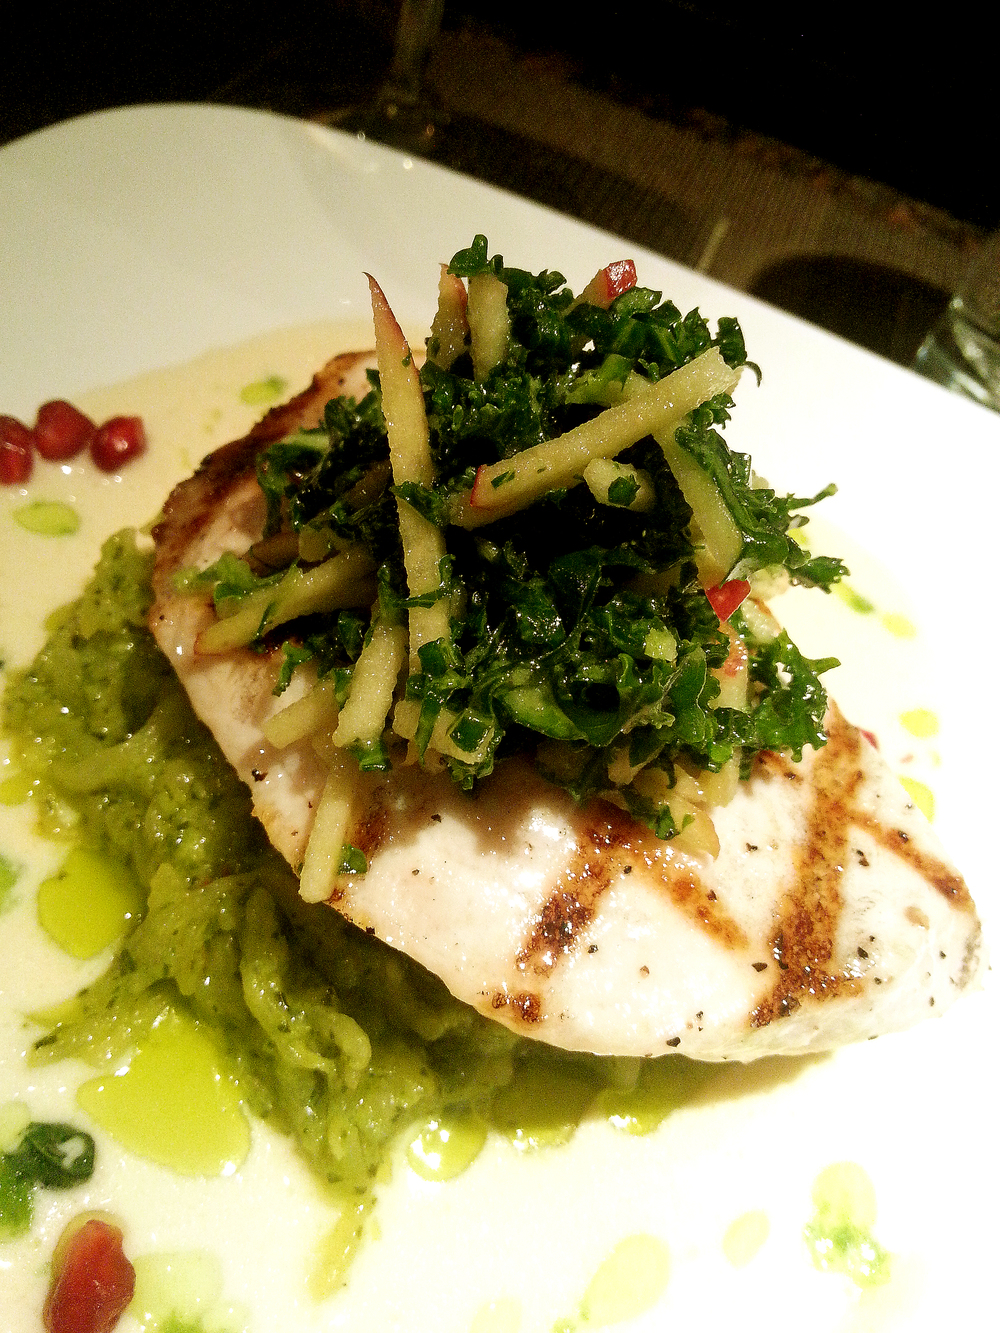 Grilled Swordfish with Kale and Apple Slaw